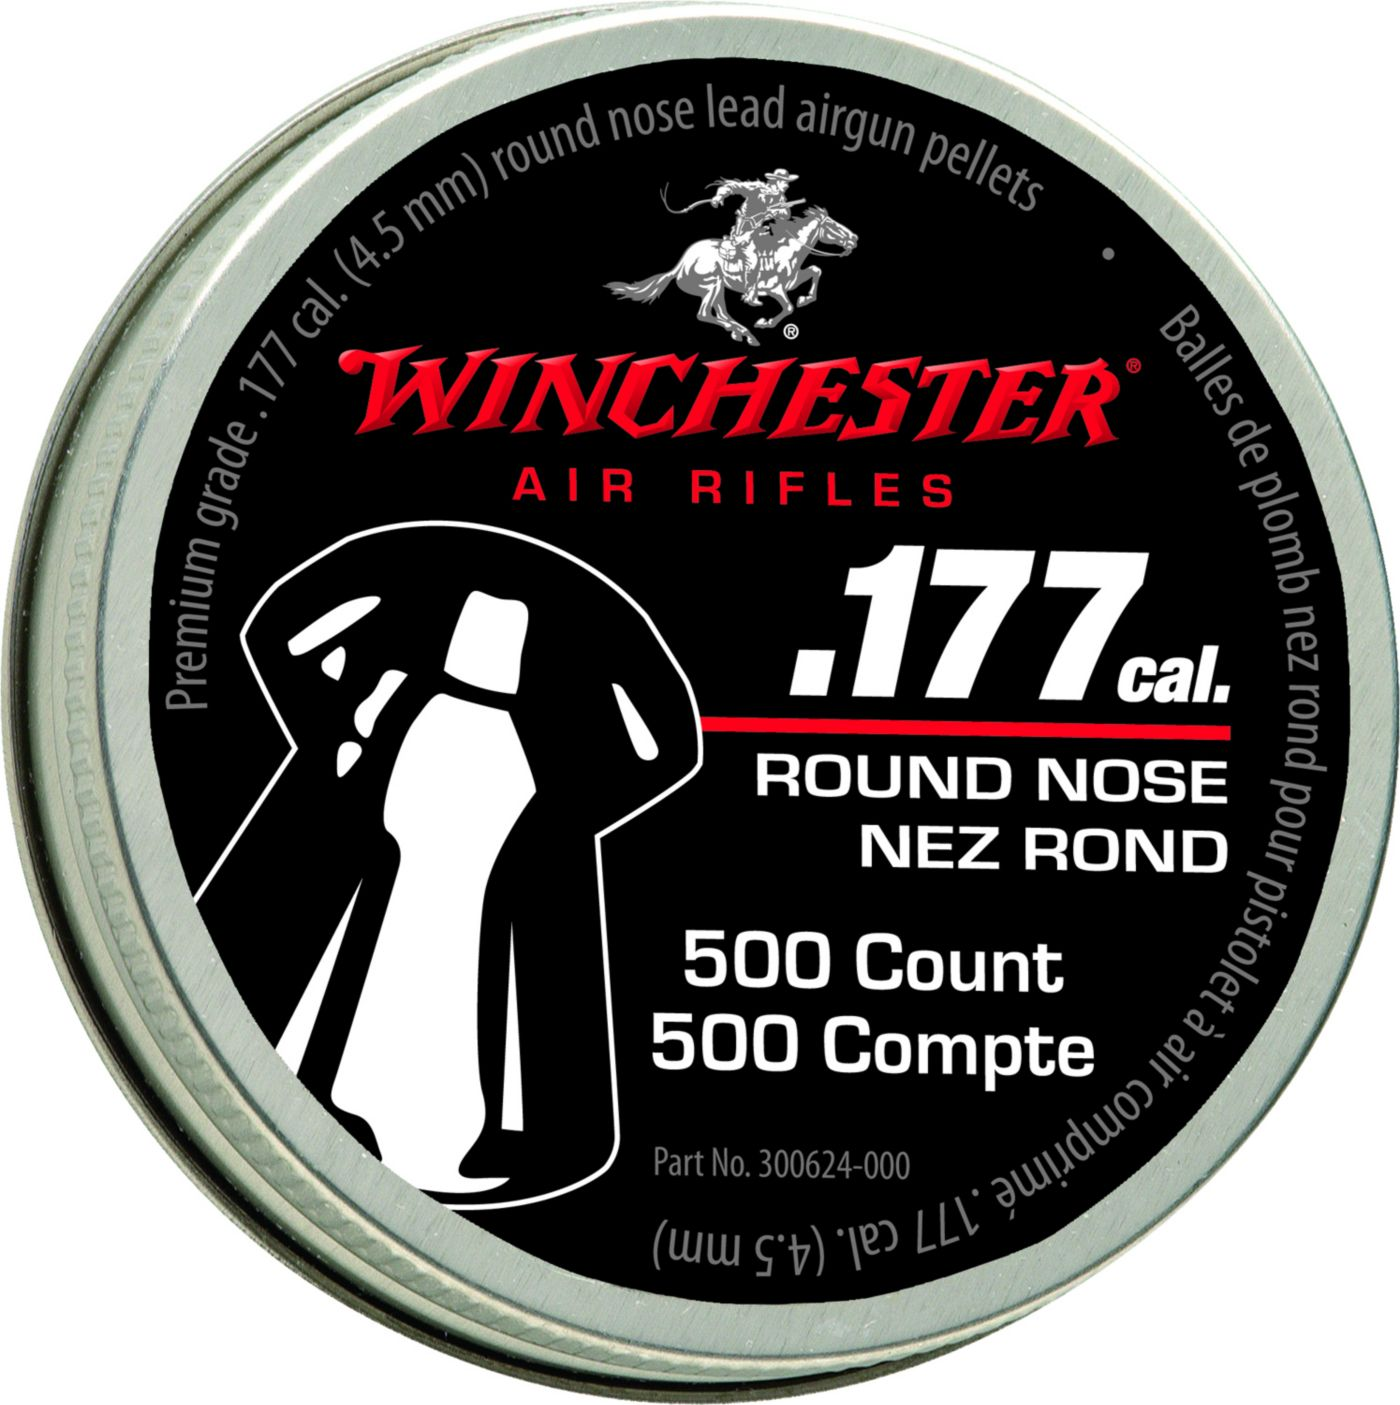 Winchester .177 Caliber Round Nose Pellets – 500 Count